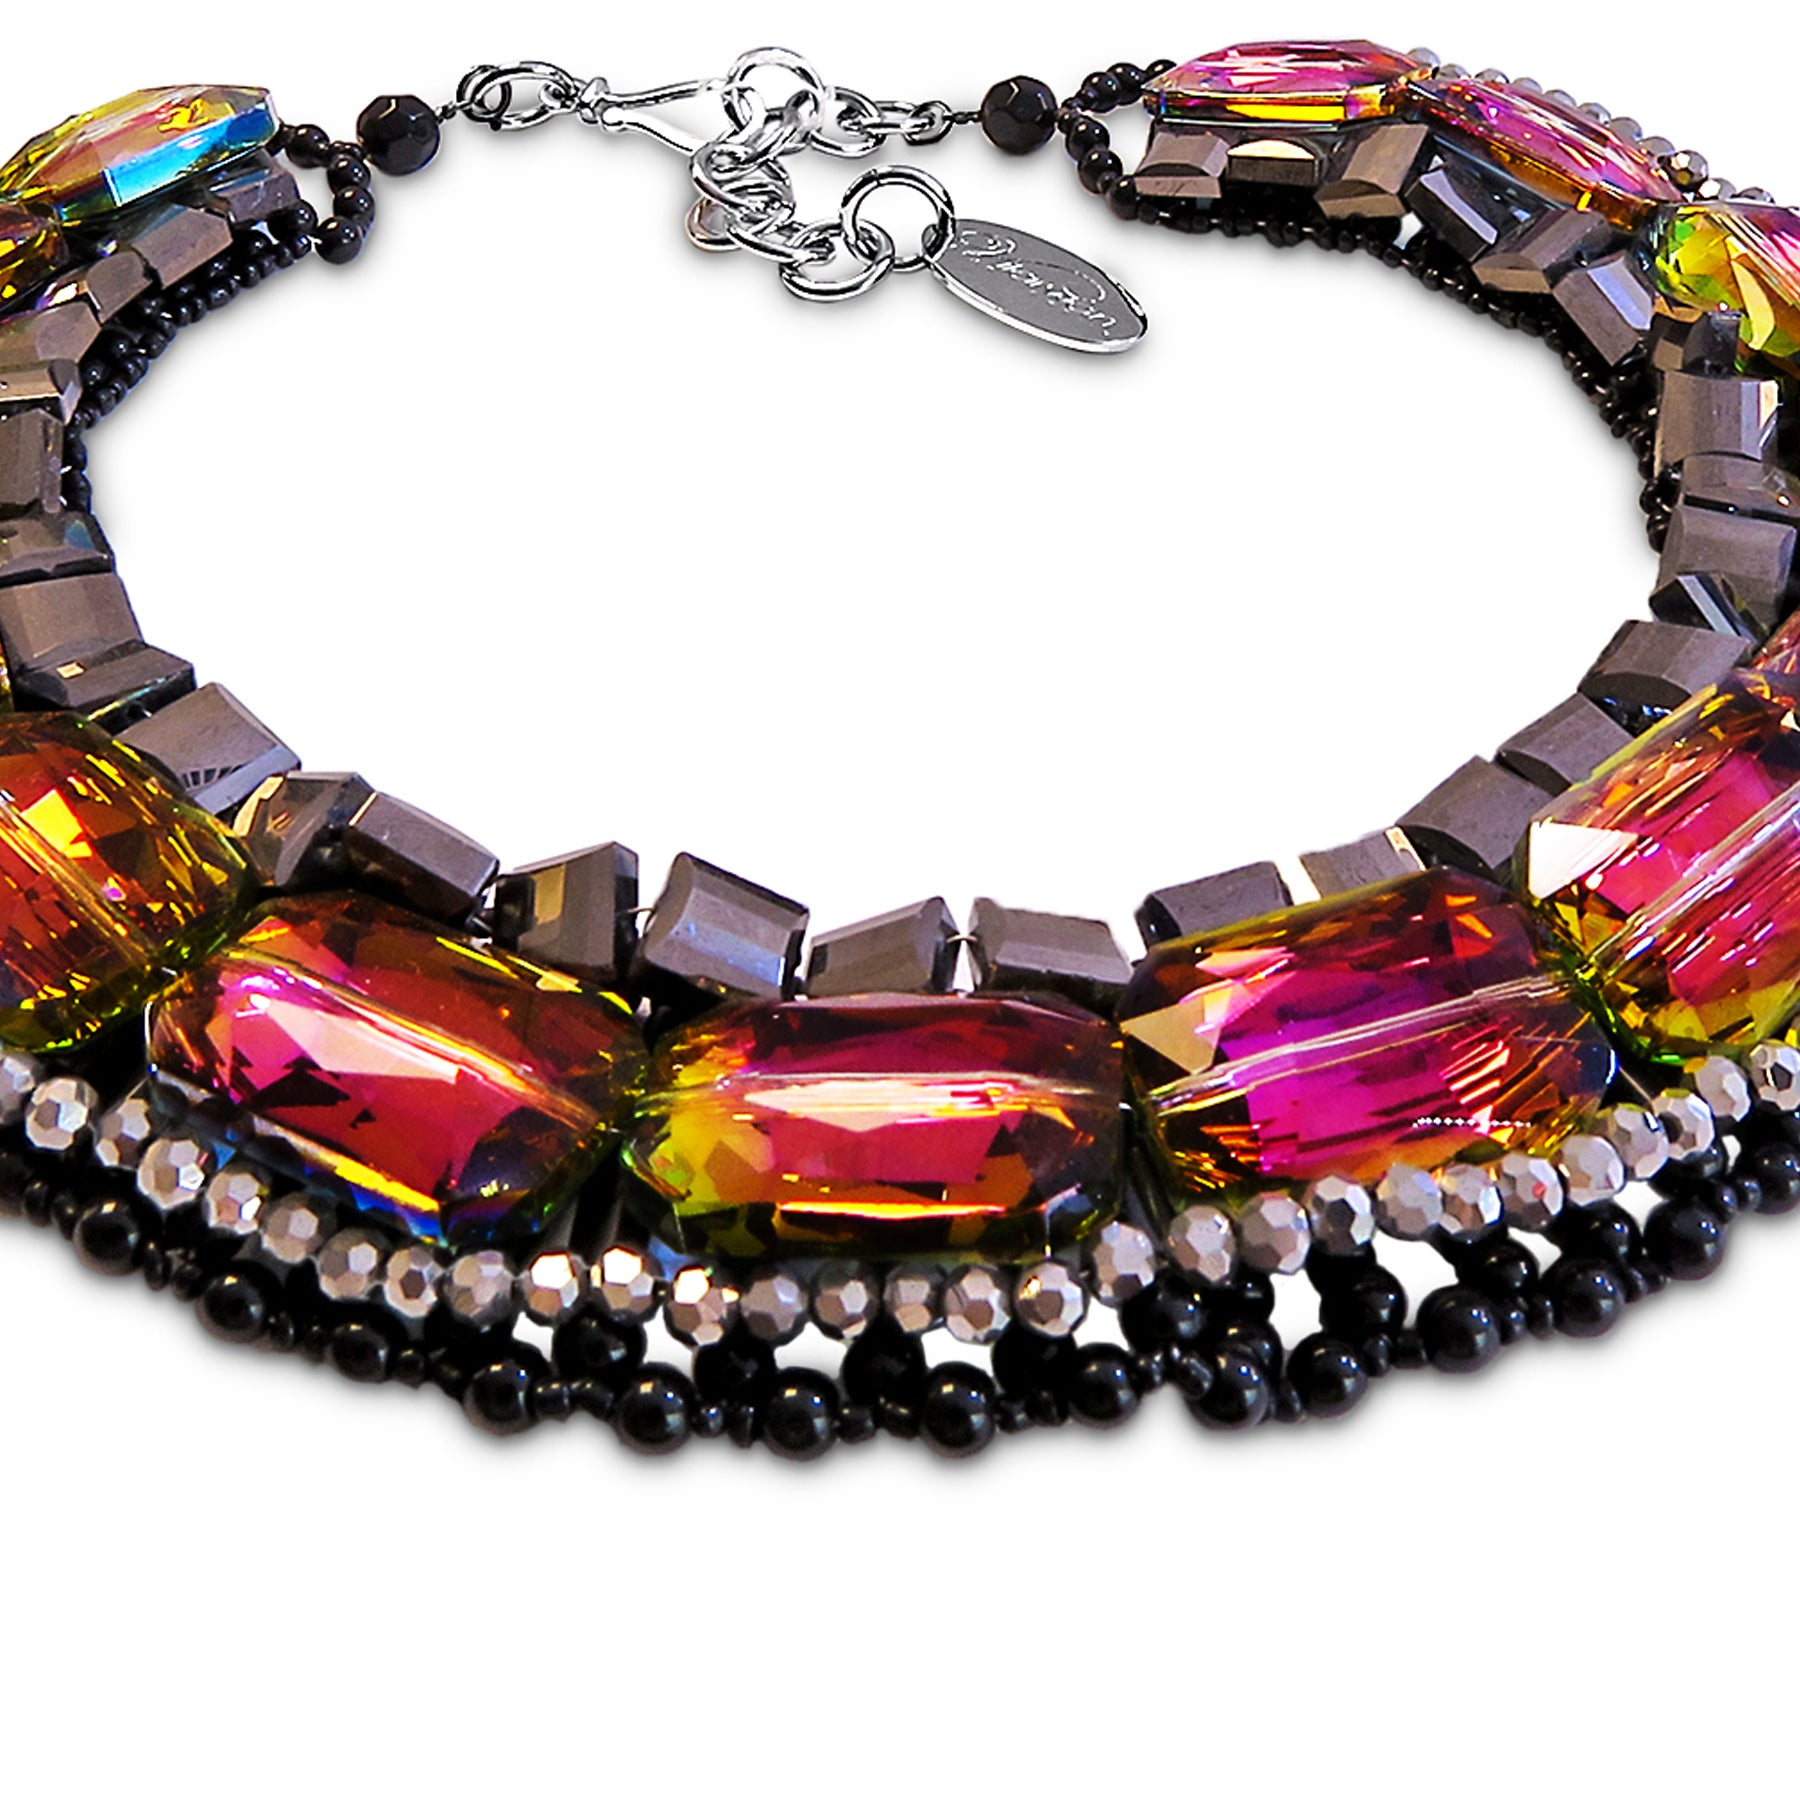 Vilaiwan Necklace with Rainbow Crystal, Hematite and Onyx, Rare Piece